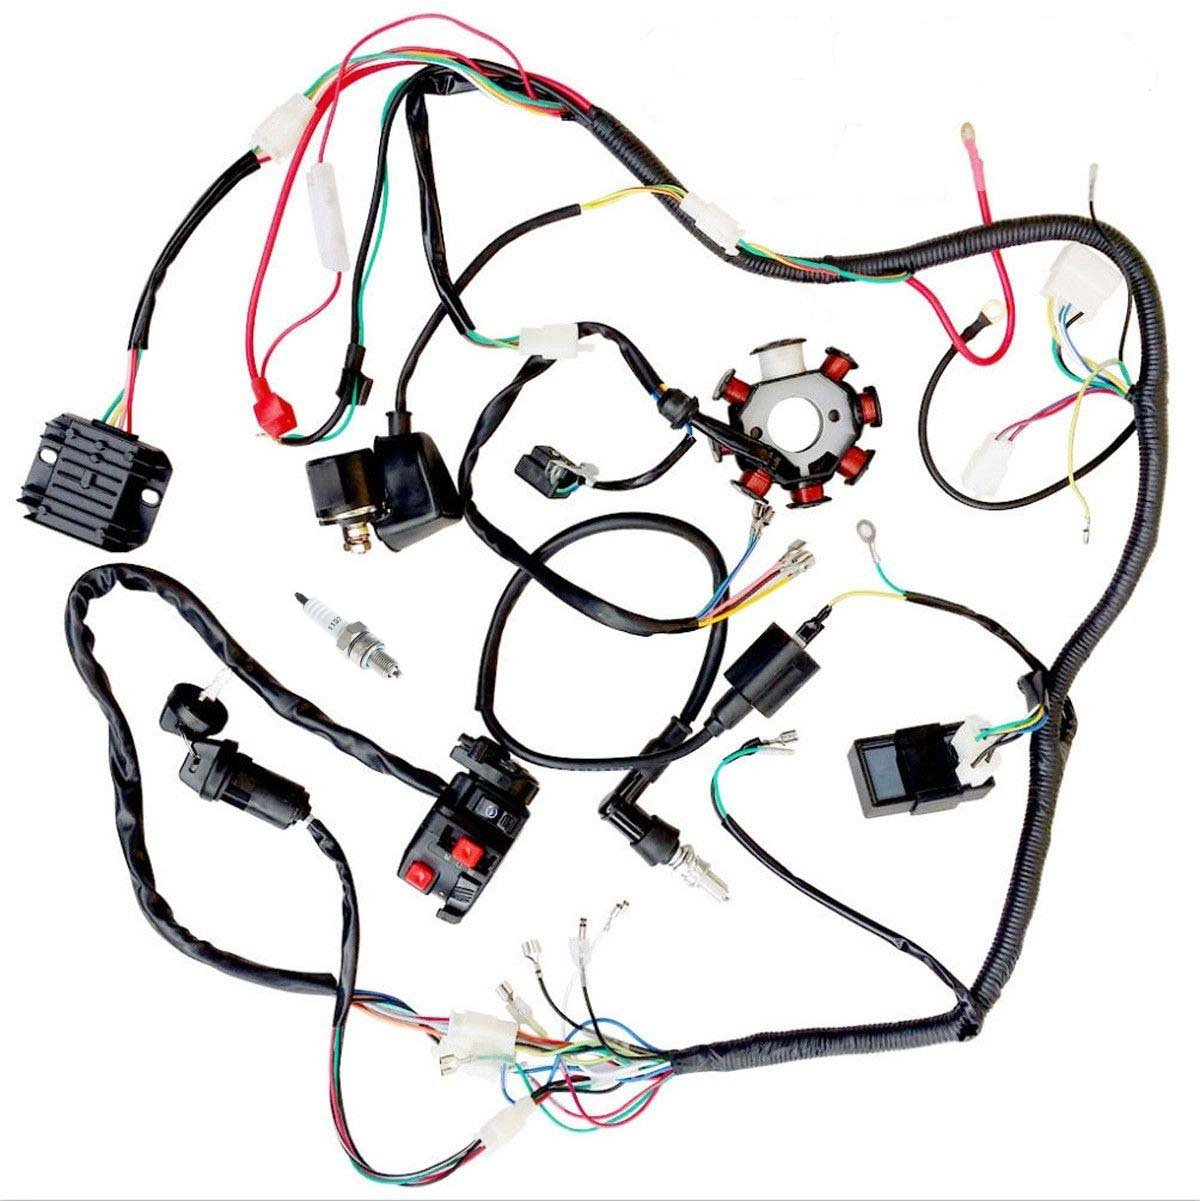 Amazon.com: JIKAN Complete Wiring Harness kit Wire loom Electrics Stator  Coil CDI For ATV QUAD 4 Four wheelers 150CC 200CC 250CC Go Kart Dirt Pit  Bikes: ...